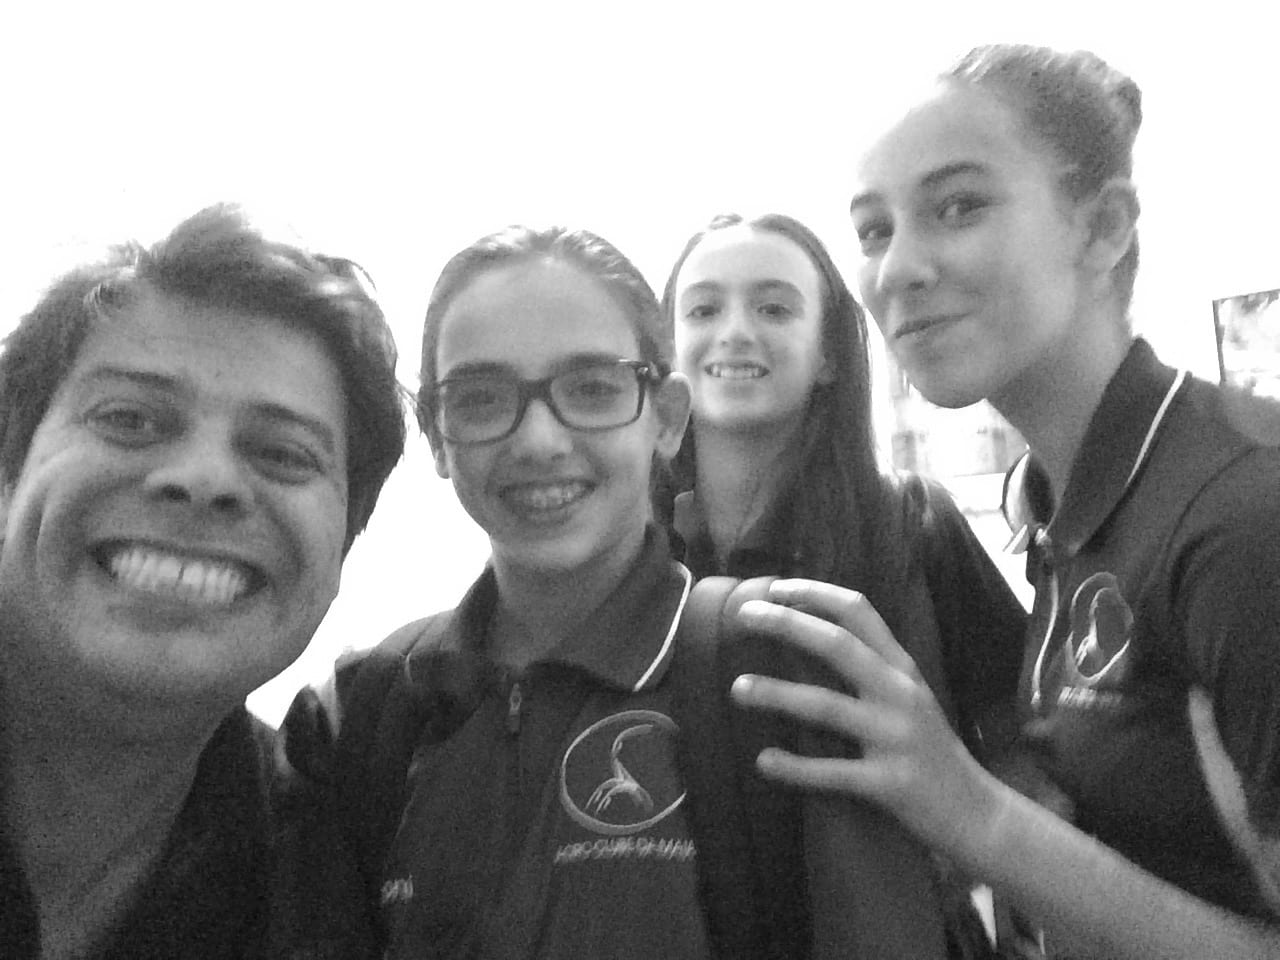 Selfie wih the gymnastics artists Bruna Gonçalves, Rita Teixeira, Maria Pia Martins from Acro Clube Maia.